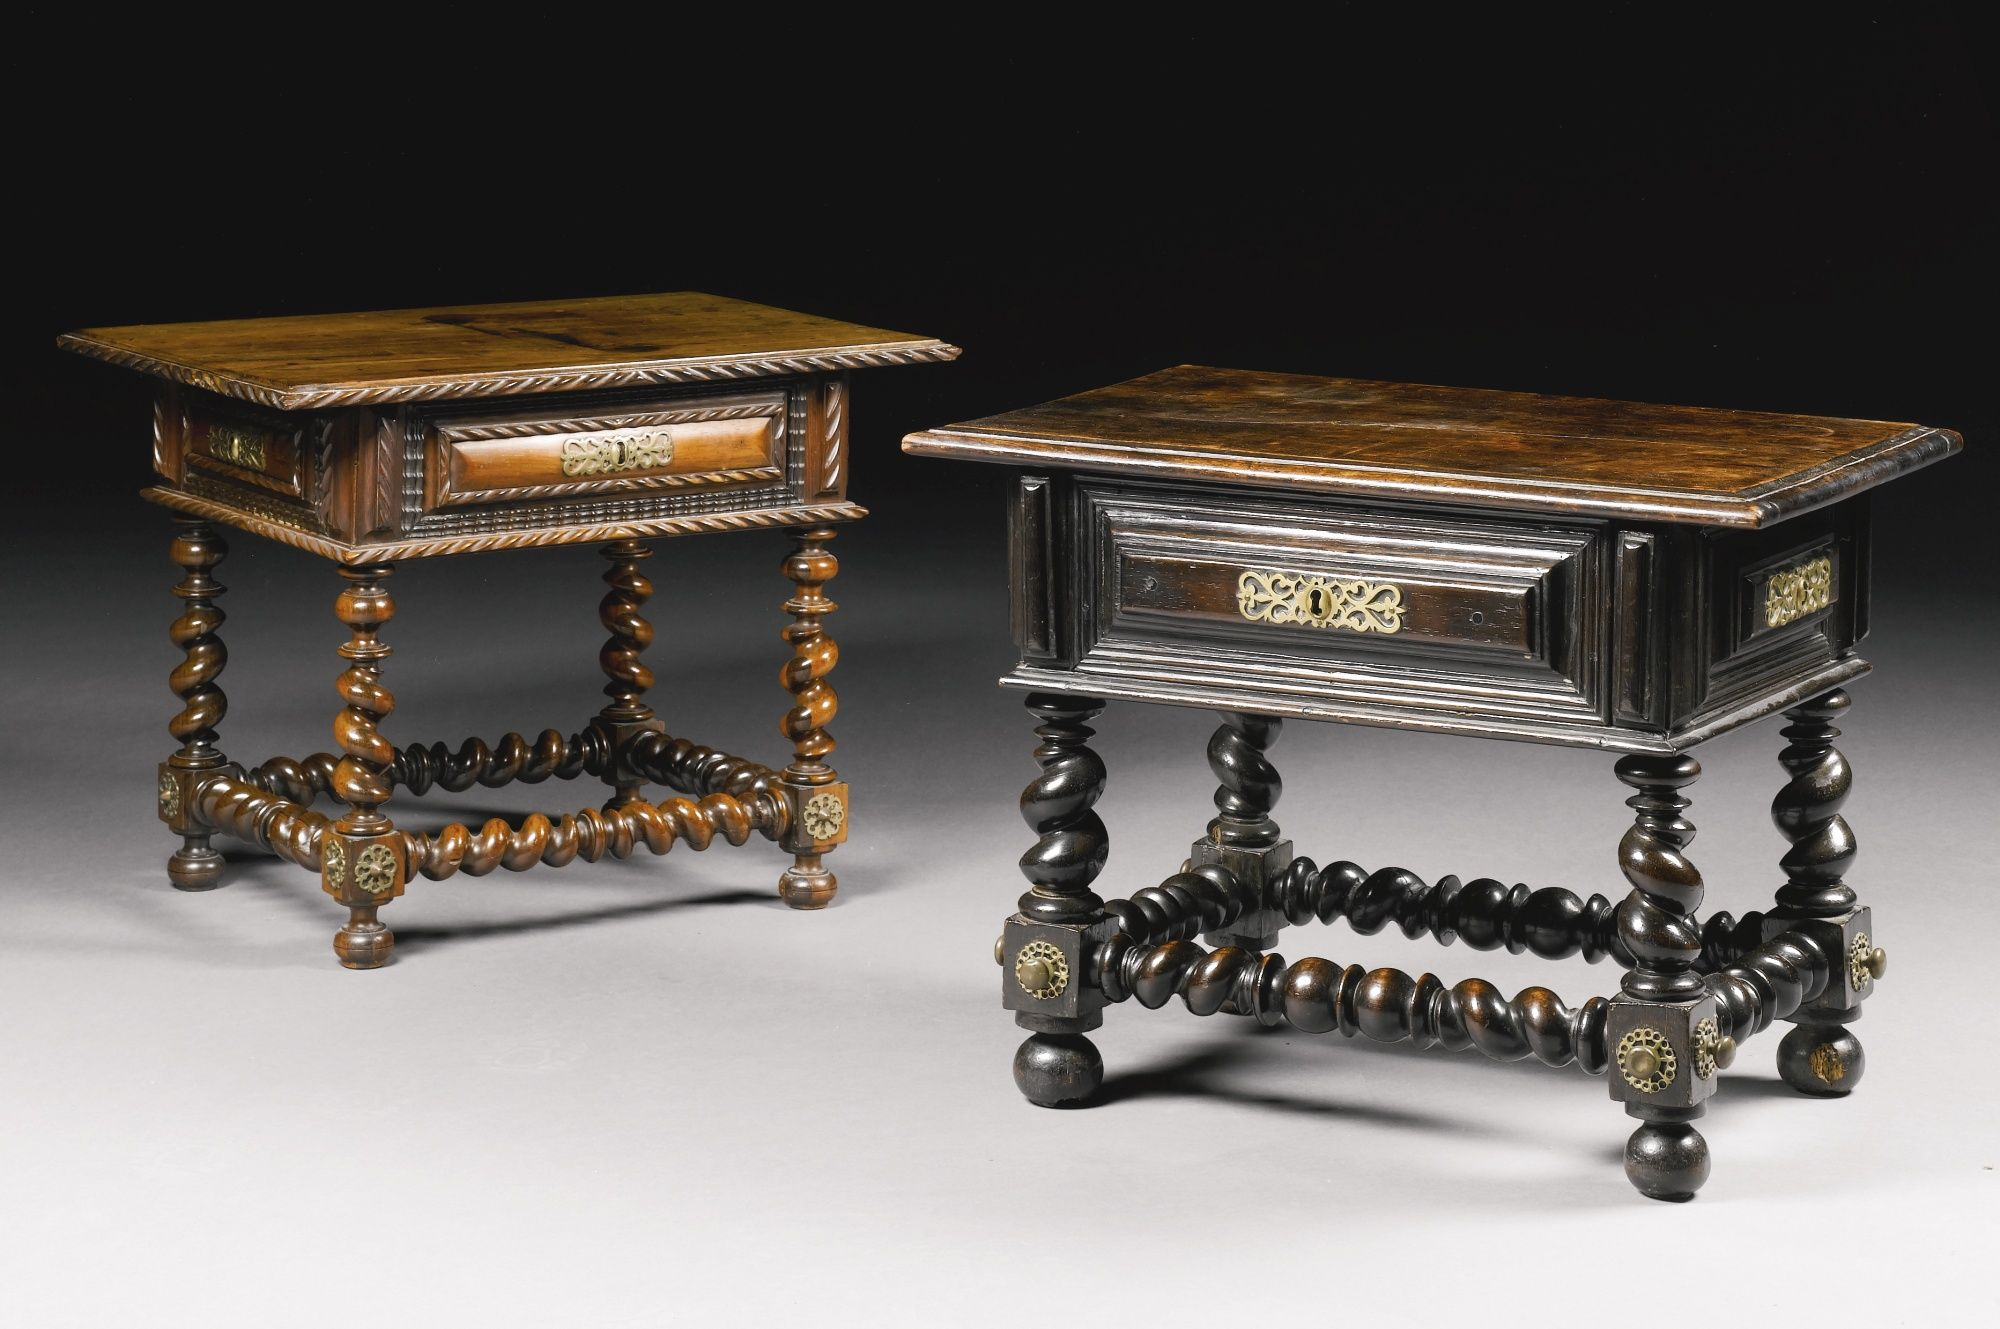 A Portuguese brass-mounted rosewood low table, early 18th century the rectangular top with moulded edge above a cushion frieze drawer, with dummy drawers to the reverse and sides, supported on ring-turned legs joined by conforming peripheral stretcher